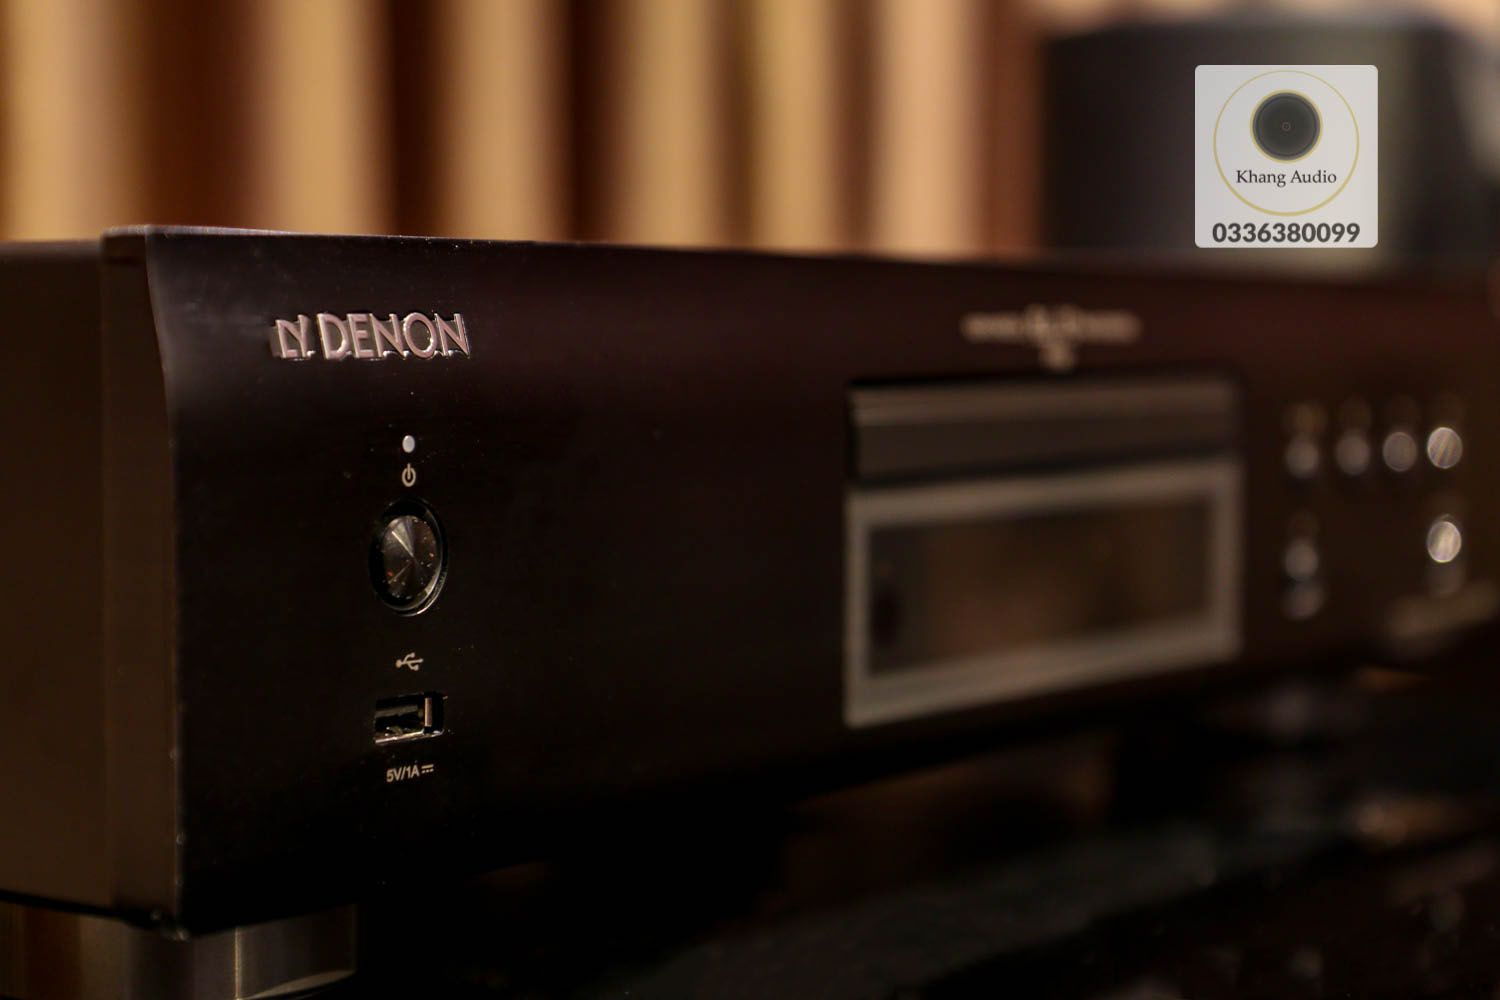 Denon DCD 800 NE CD-Player